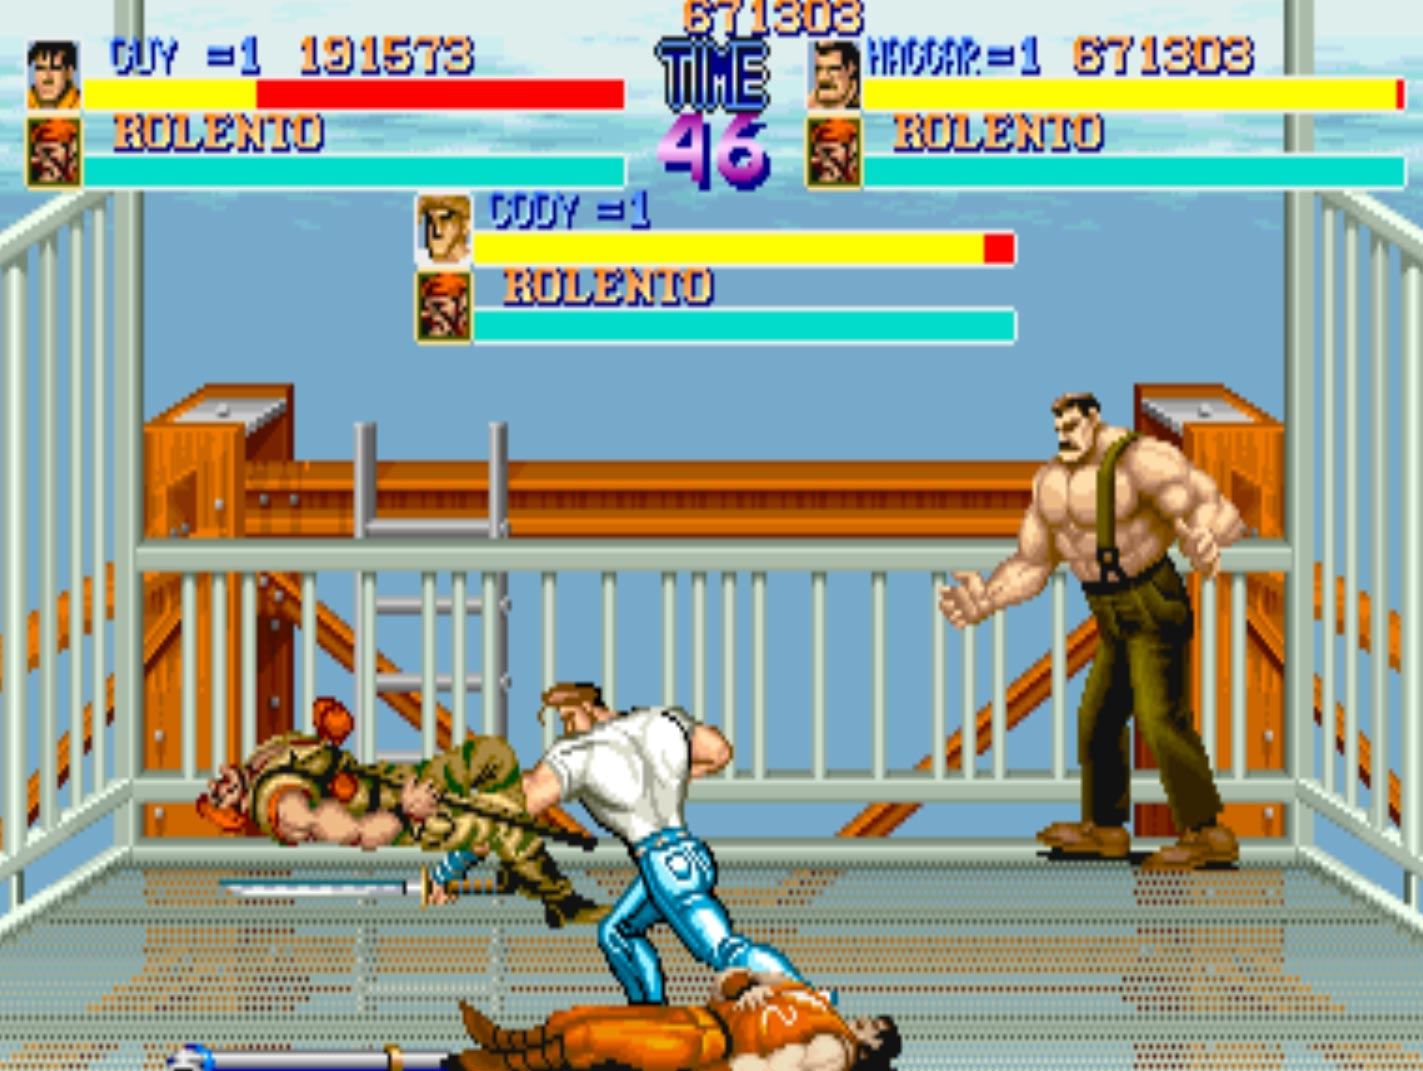 Final Fight X 3 1 out of 5 image gallery